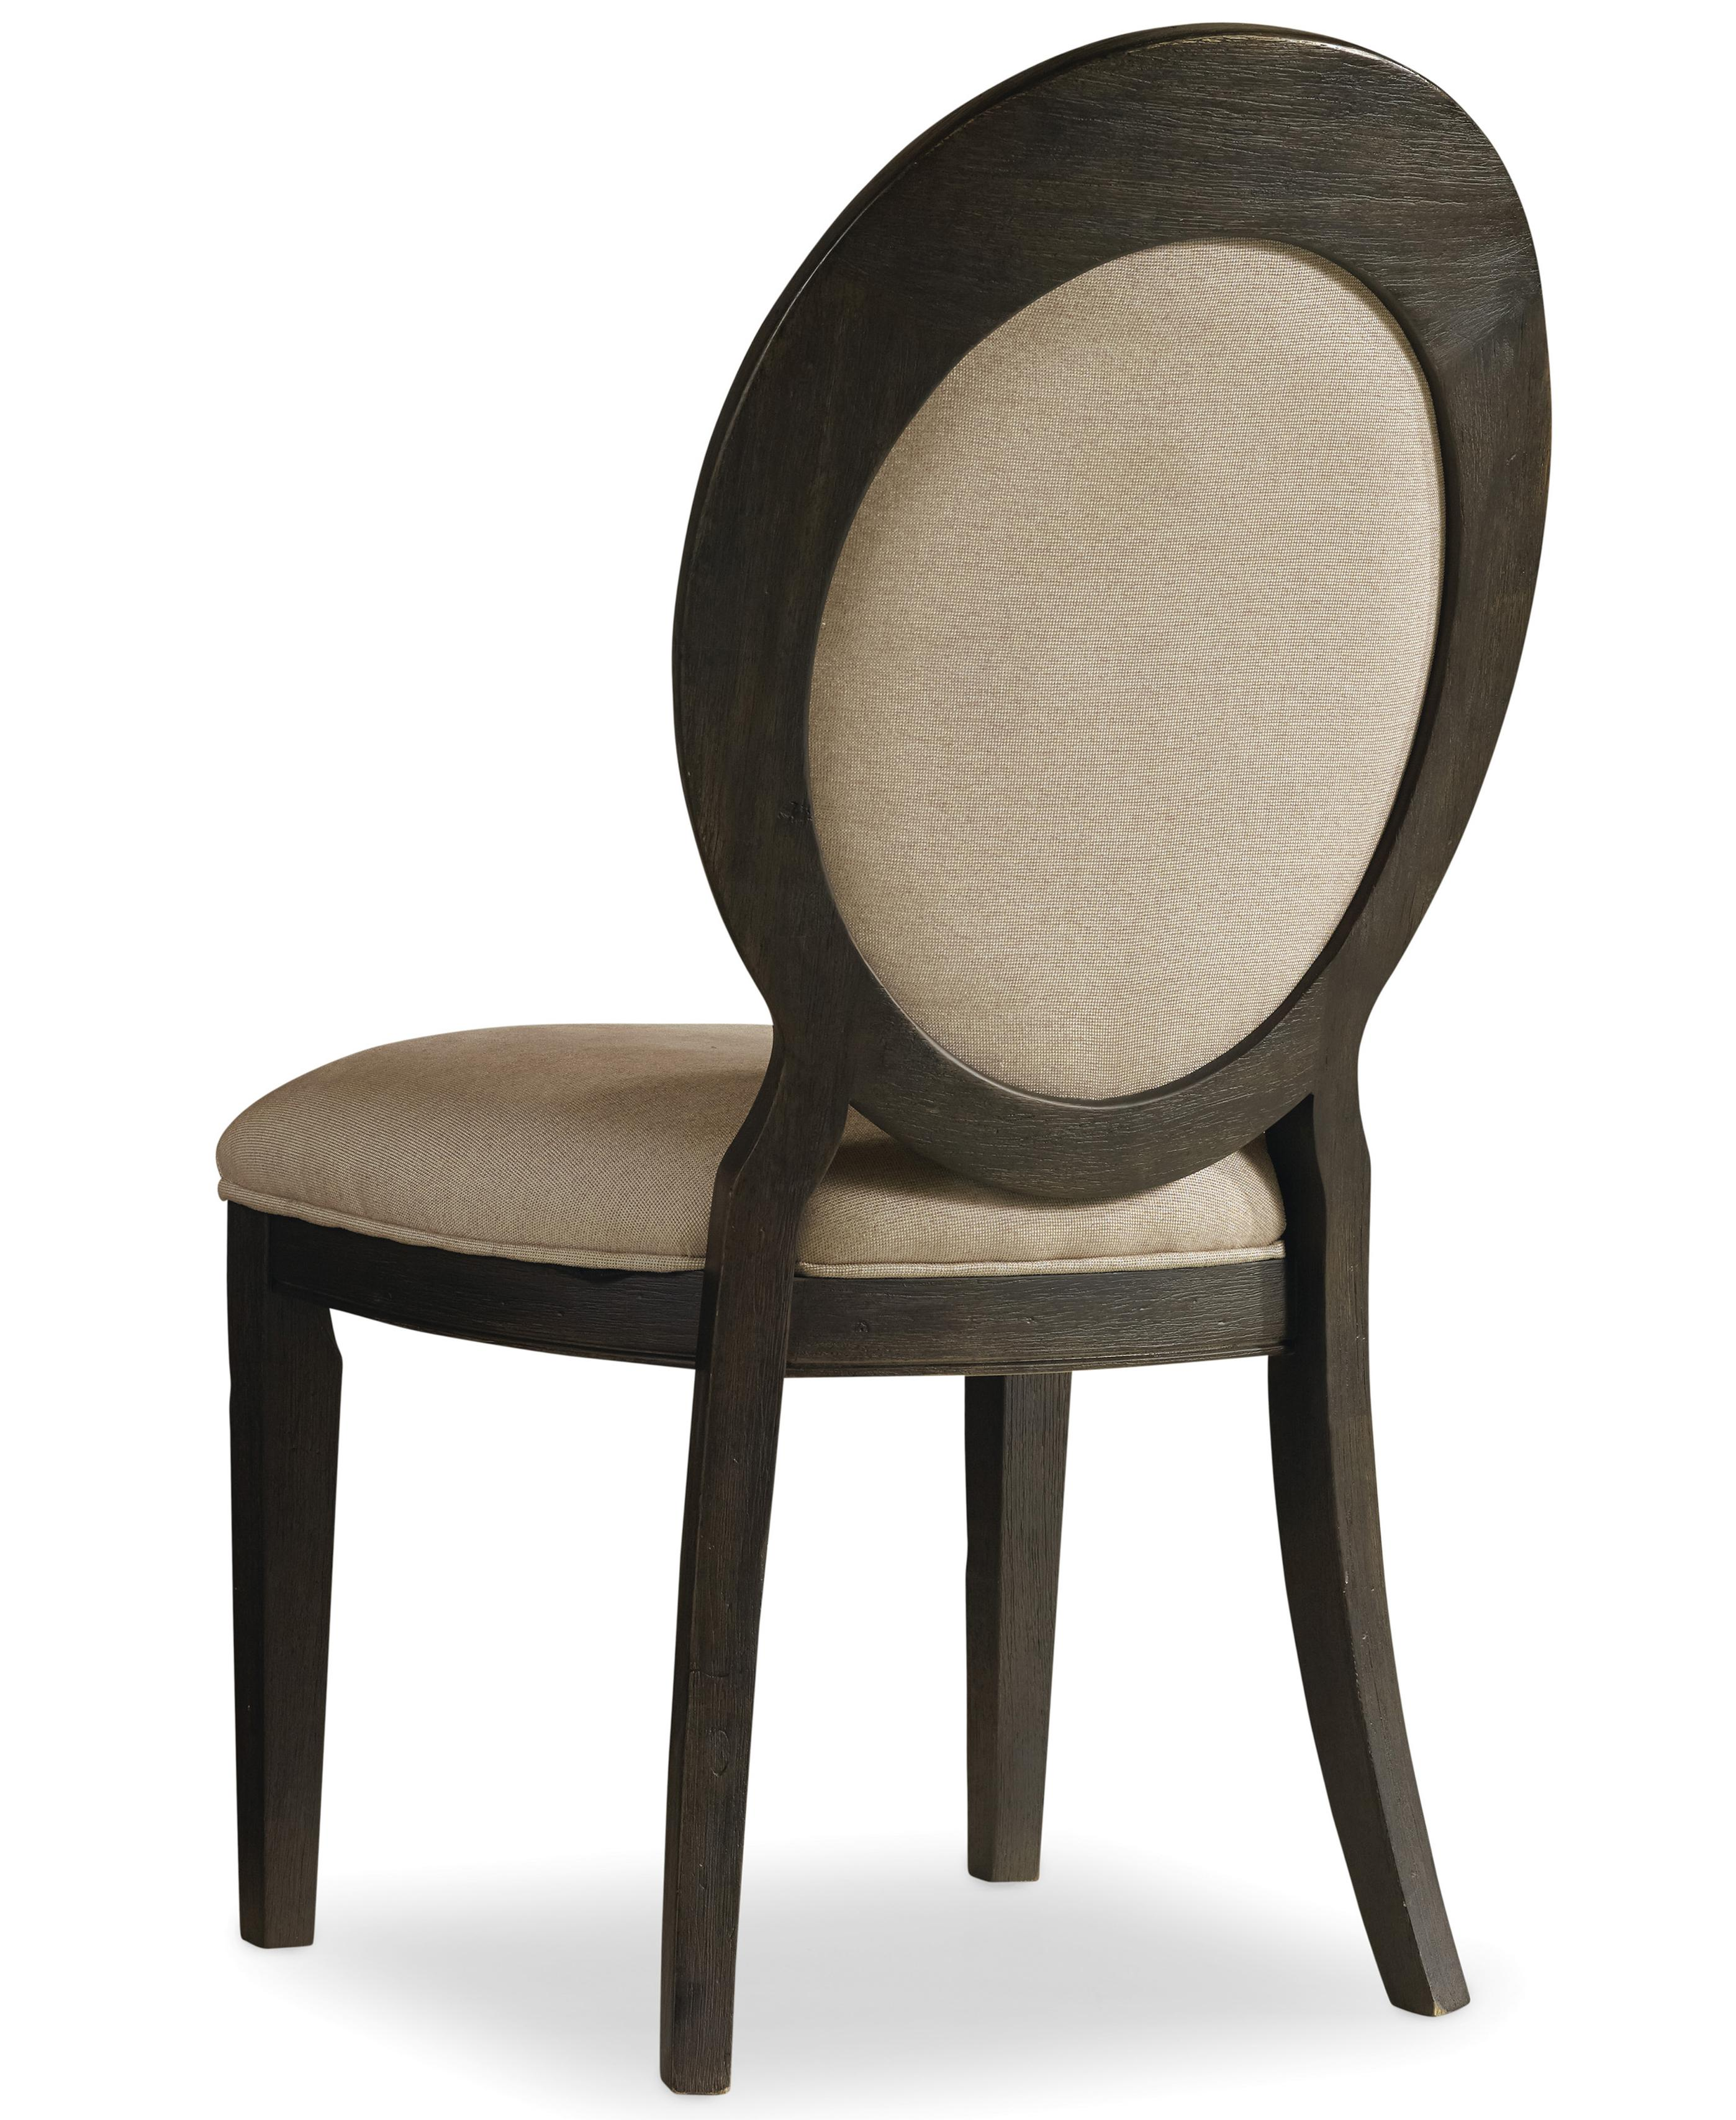 Hamilton Home Corsica Oval Back Side Chair - Item Number: 5280-75412